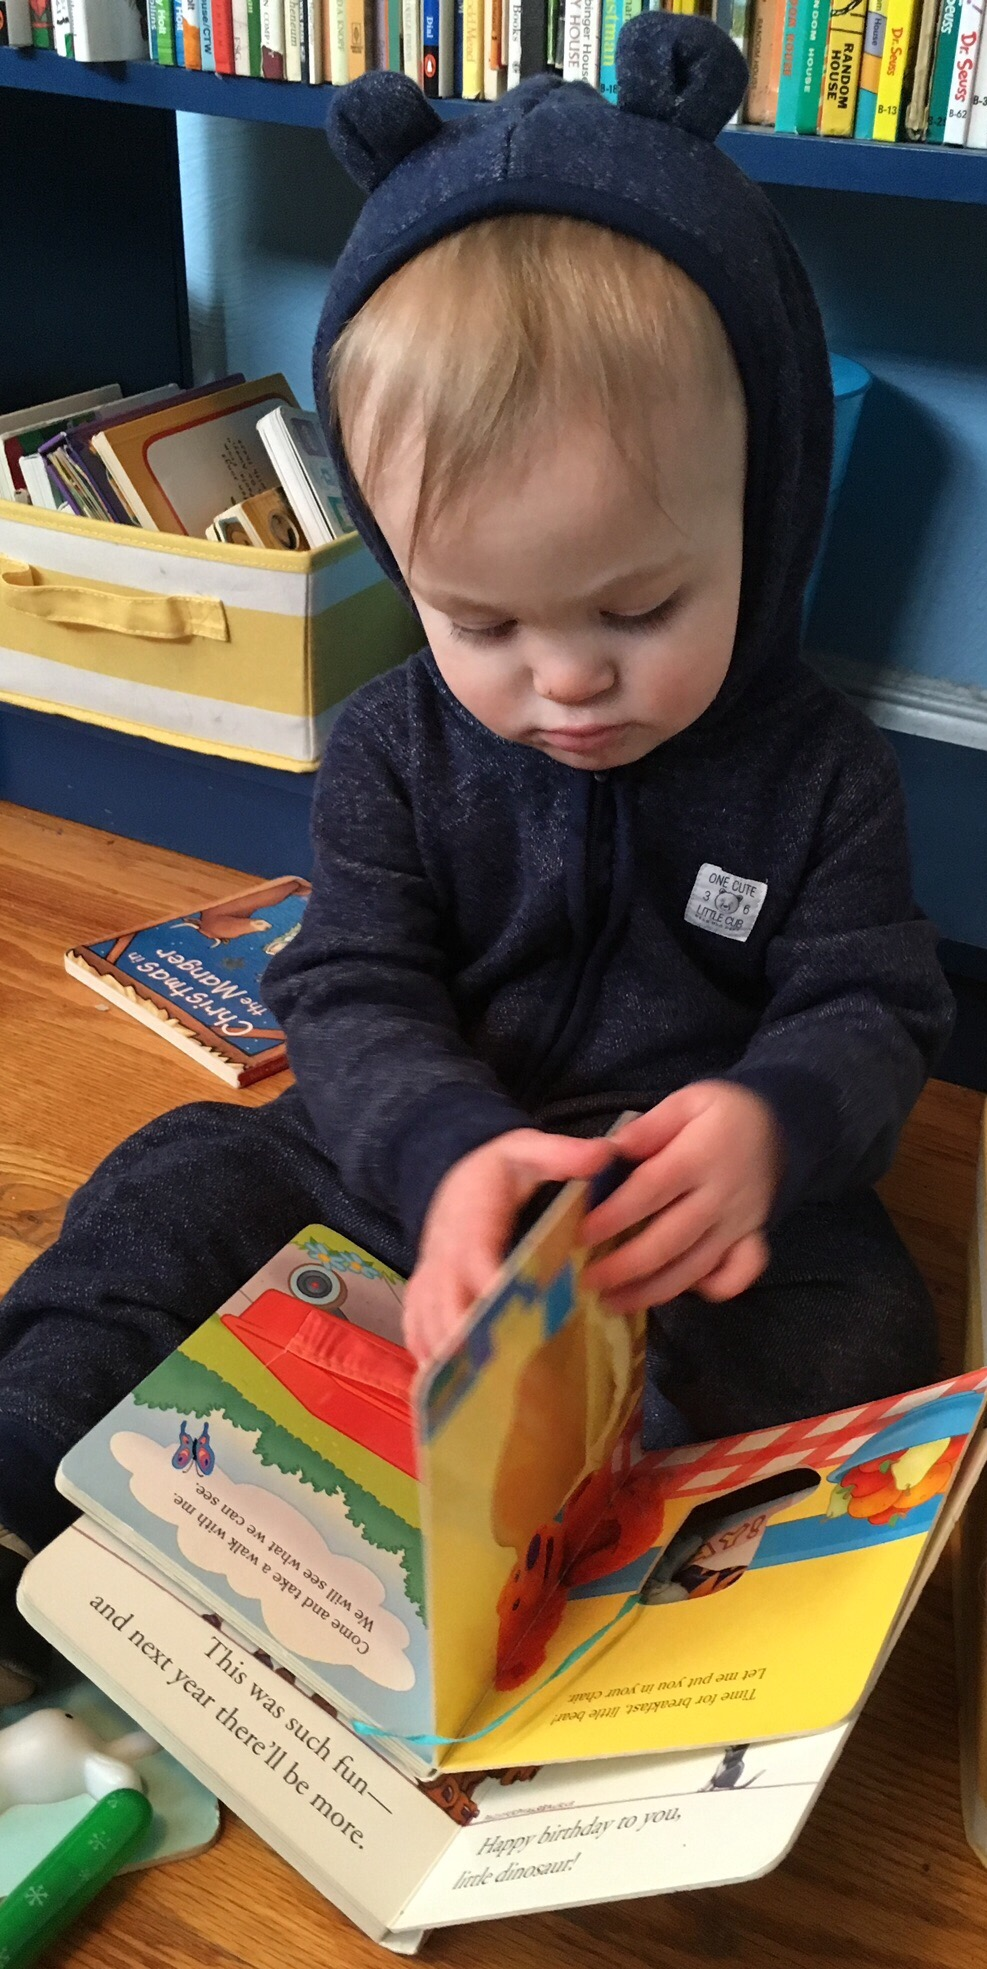 Julian with some books. This librarian mama is happy that both boys like books!